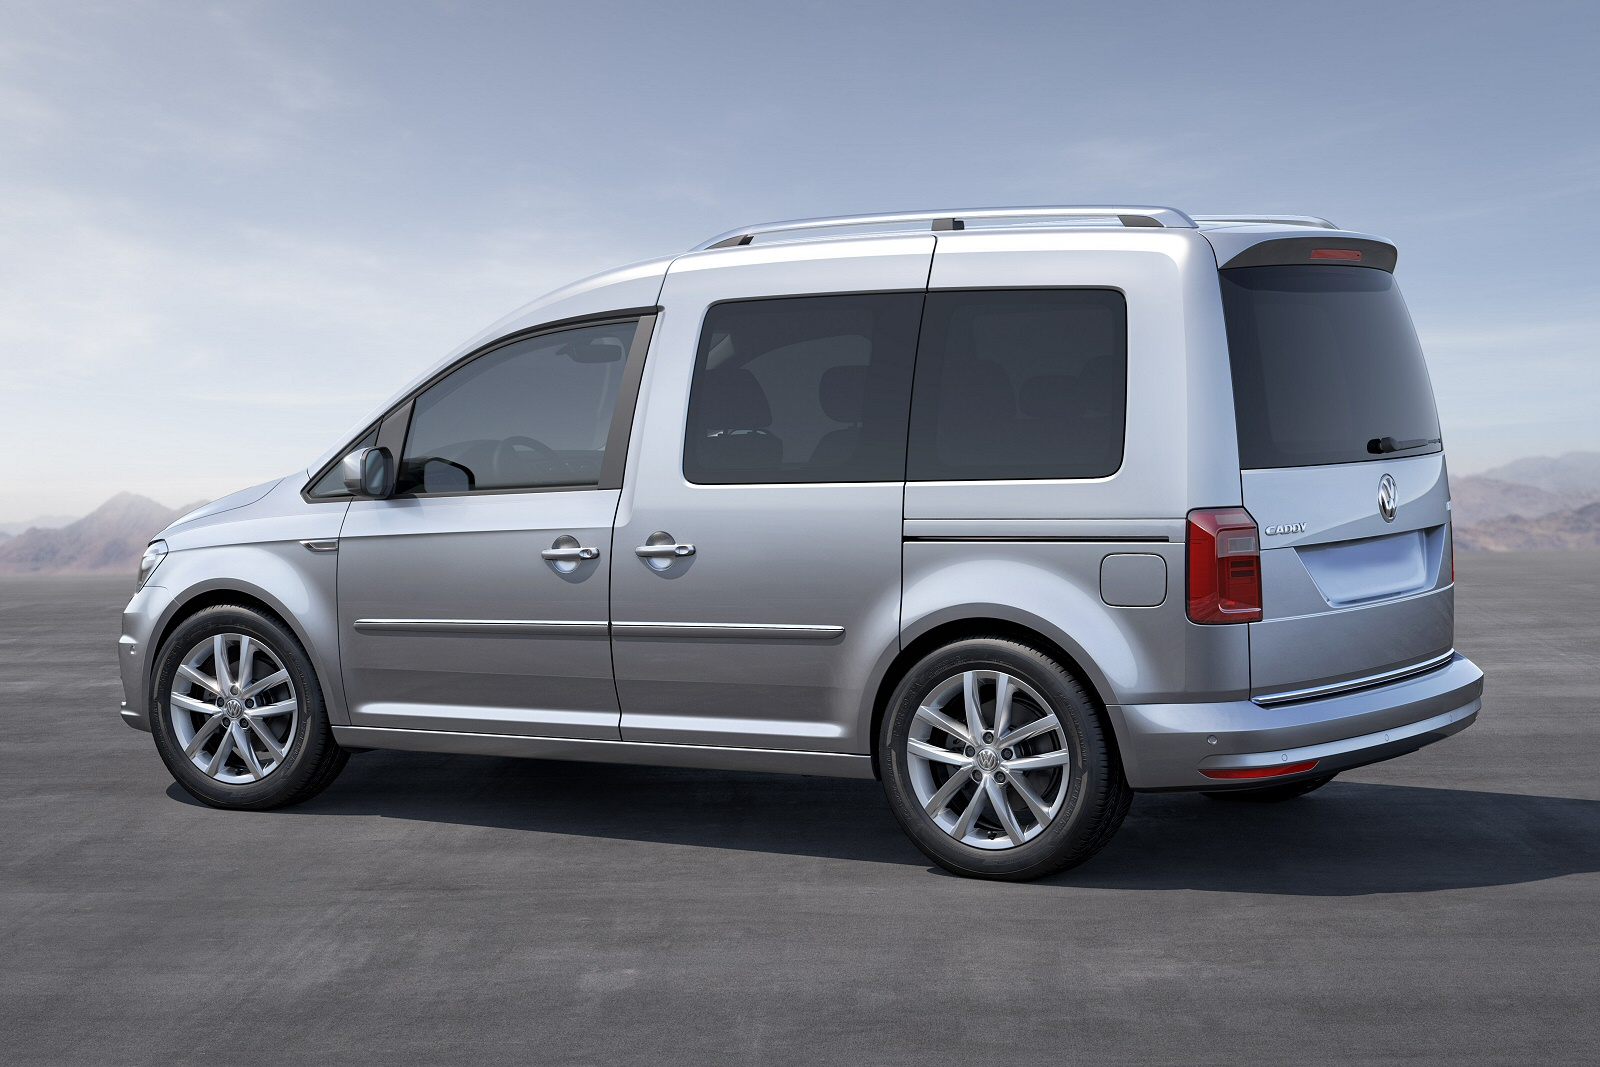 New Volkswagen Caddy Life 1 2 Tsi 5dr Petrol Estate For